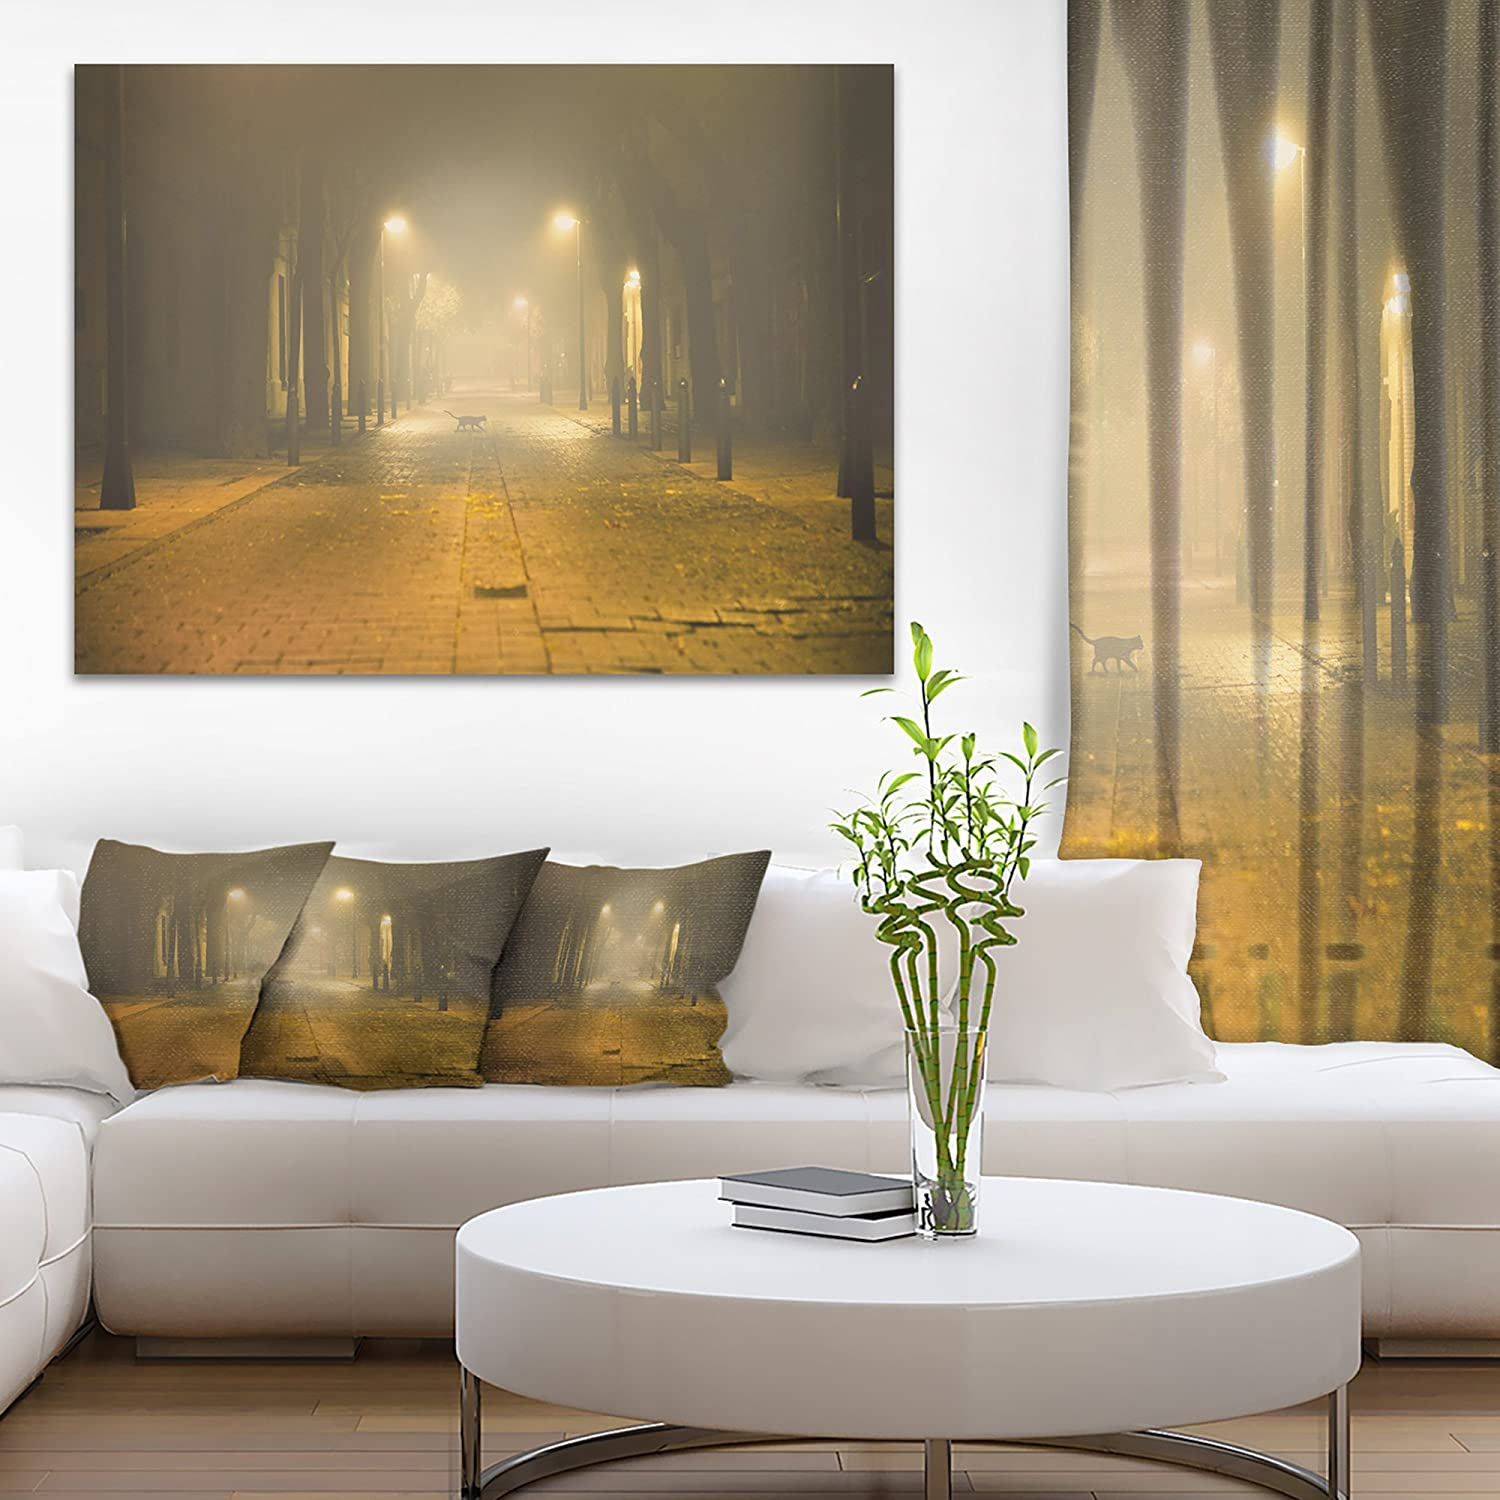 Design Art Pt9406 3p Urban Street At Night Landscape Photo Canvas Art Print 36x28in Multipanel 3piece Yellow 36x28 3piece Amazon In Home Kitchen